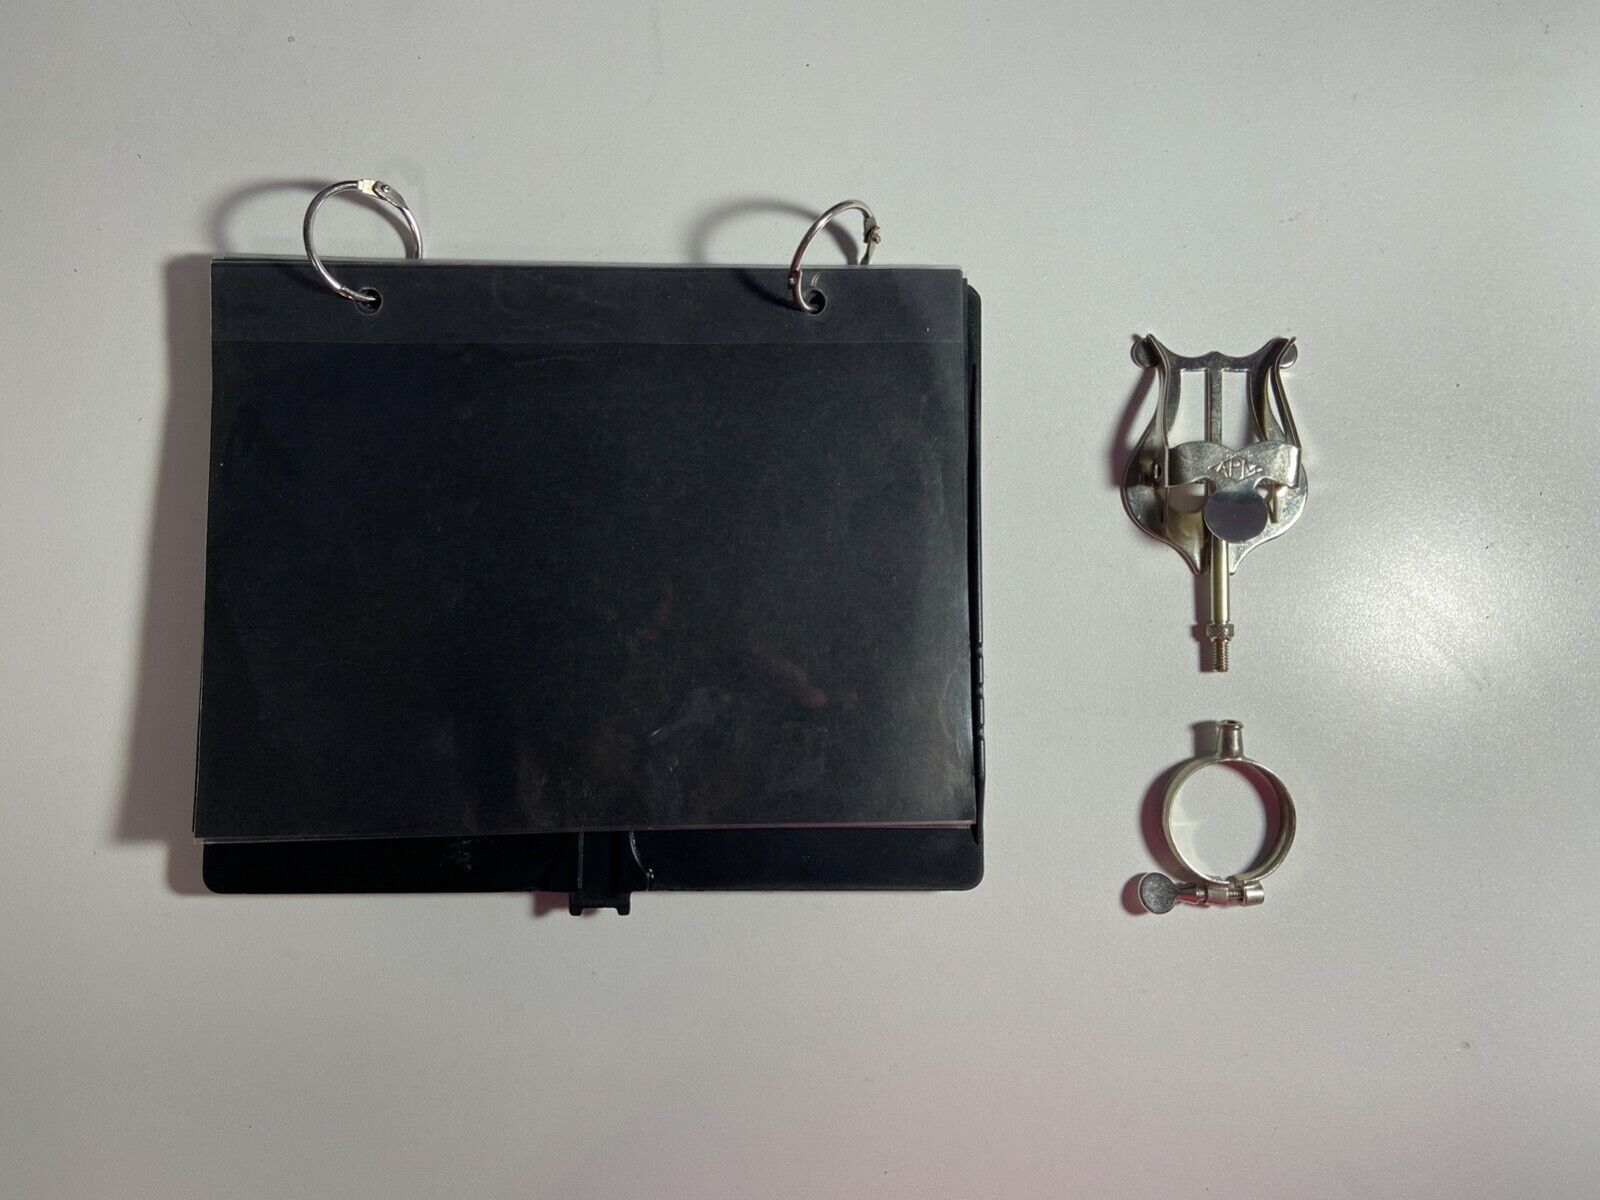 Bb Clarinet Lyre With Flip Folder For Marching Band. - $9.50